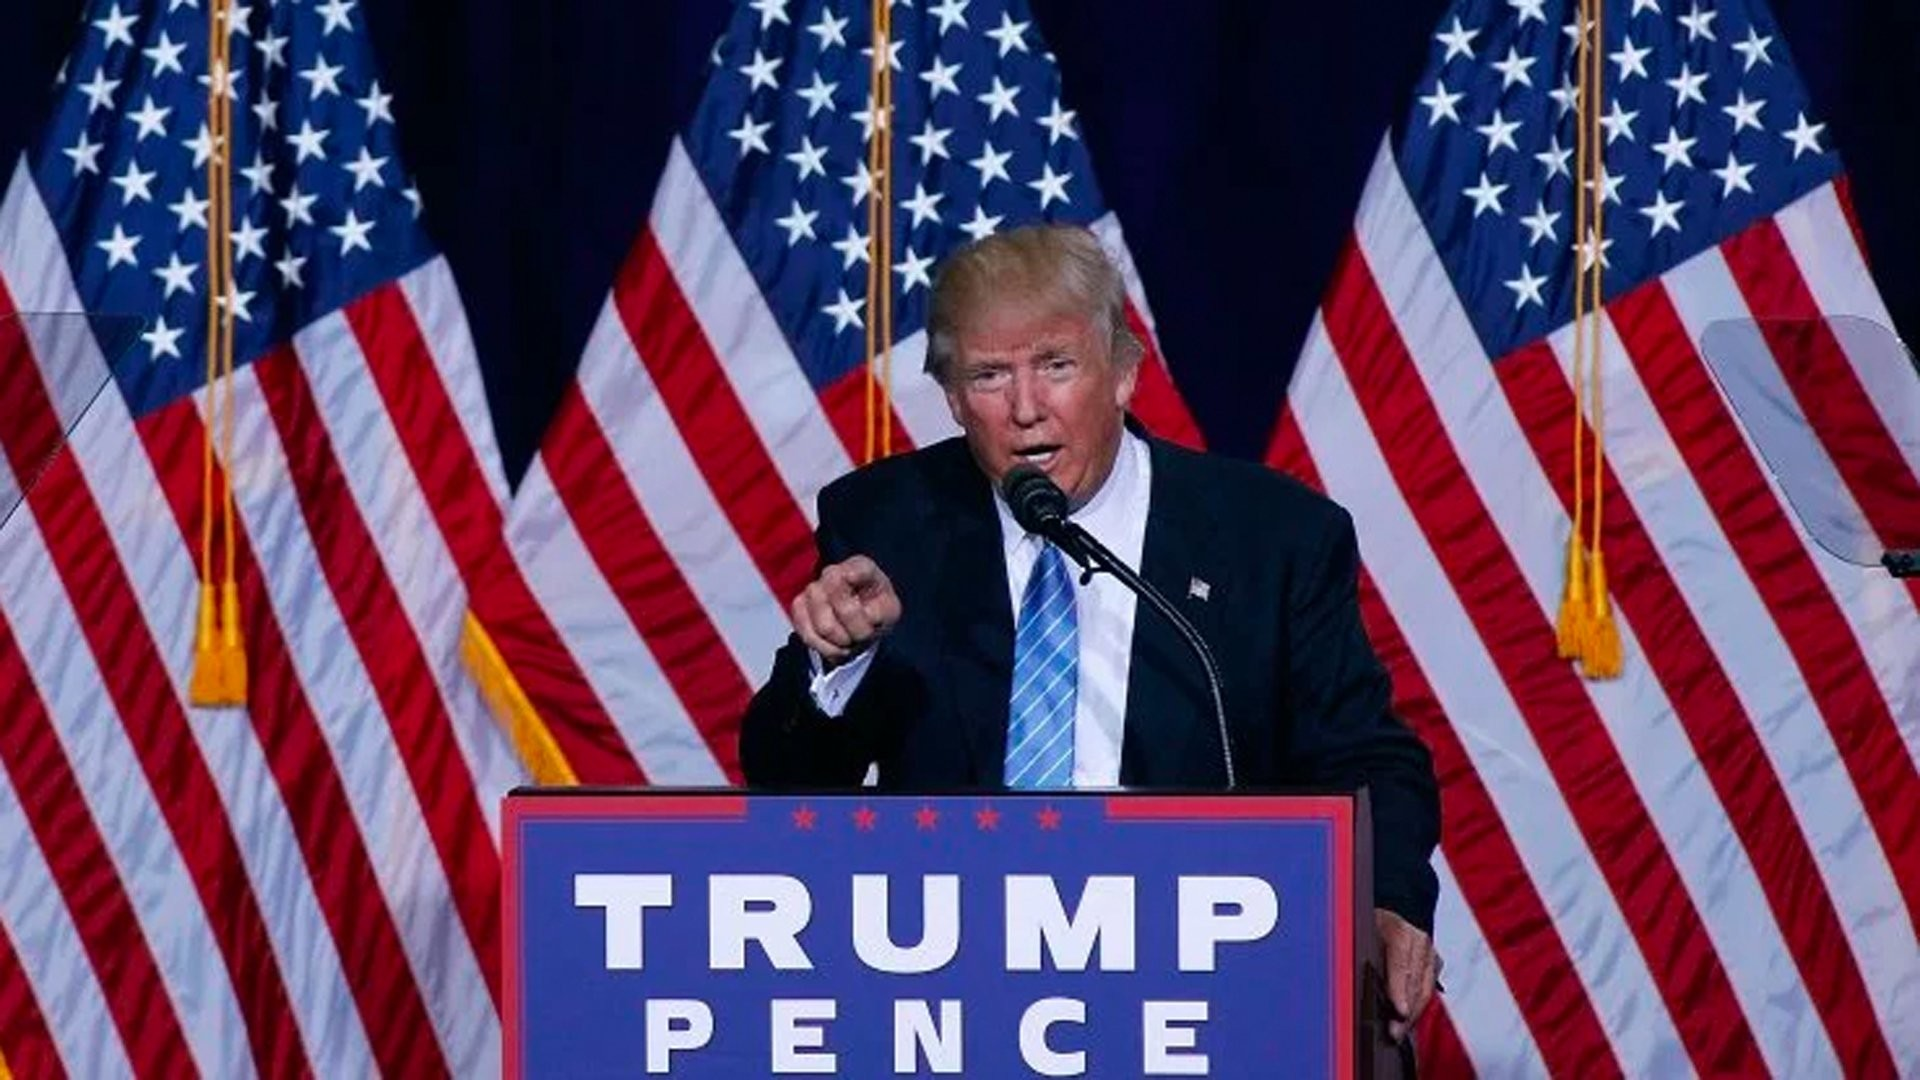 Republican presidential nominee Donald Trump speaks during a campaign rally  on August 31, 2016 in